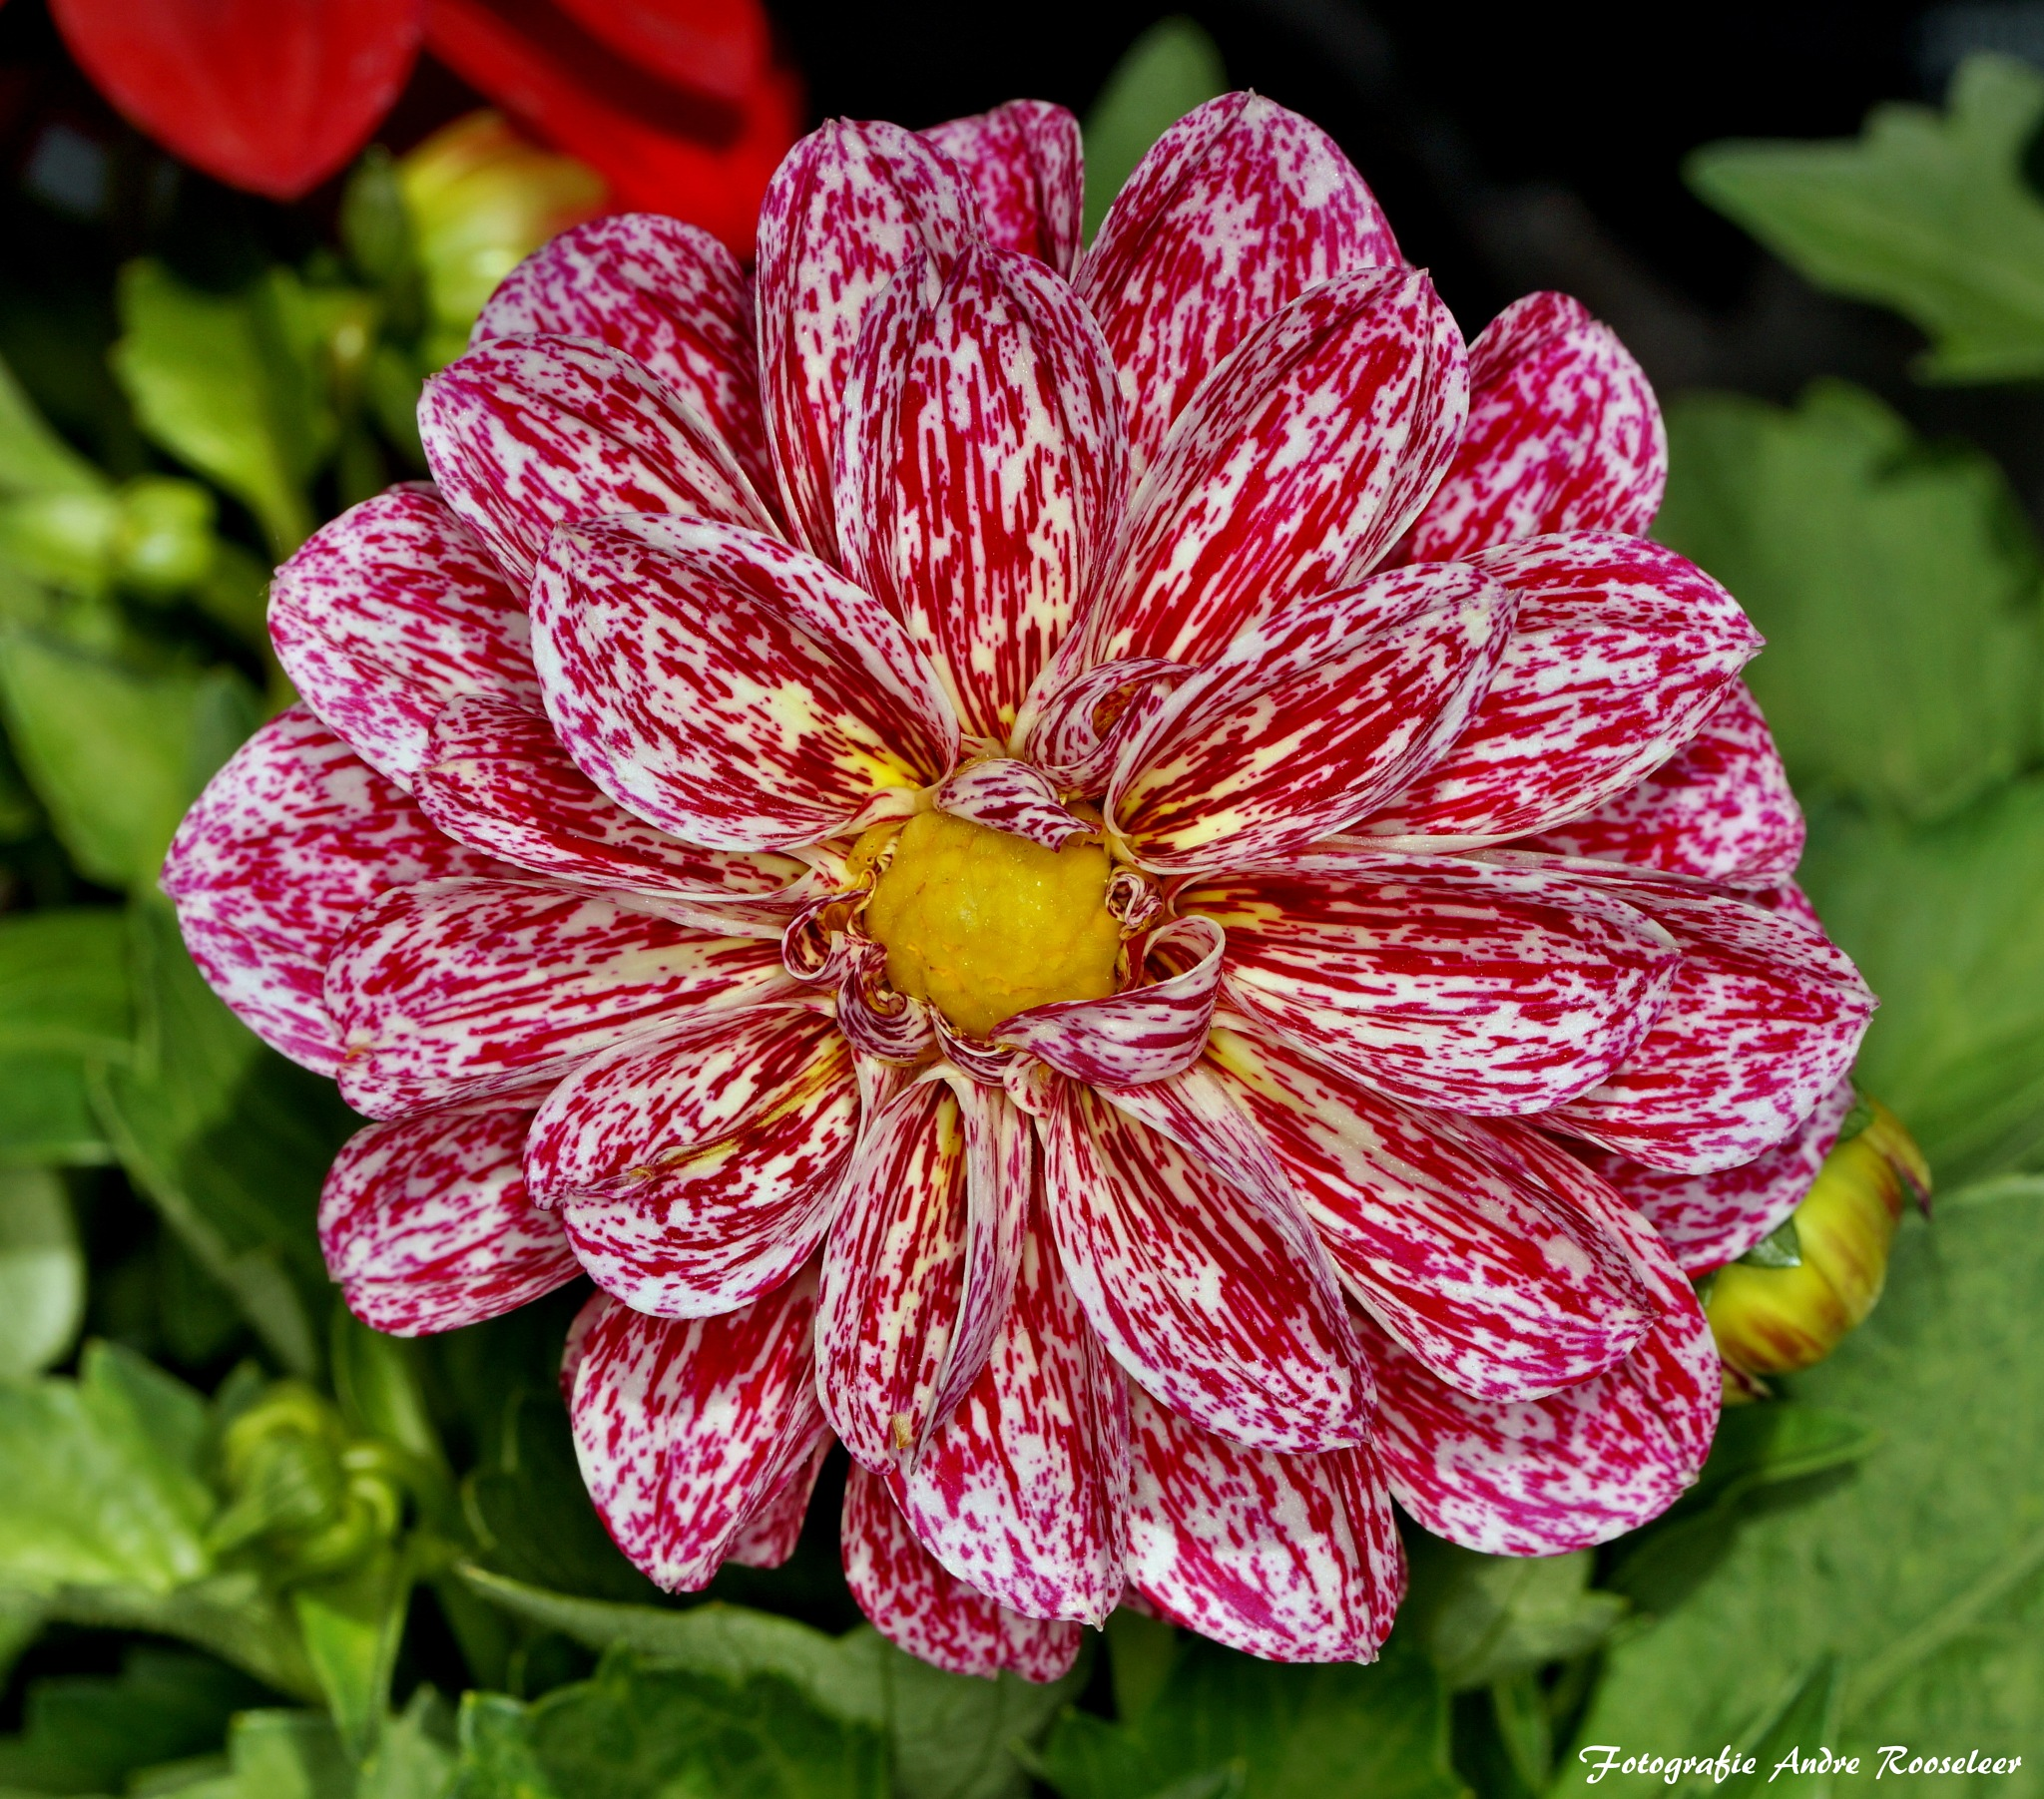 Good morning A very nice day for everyone  A beauty of nature (Dalia) by andre.rooseleer